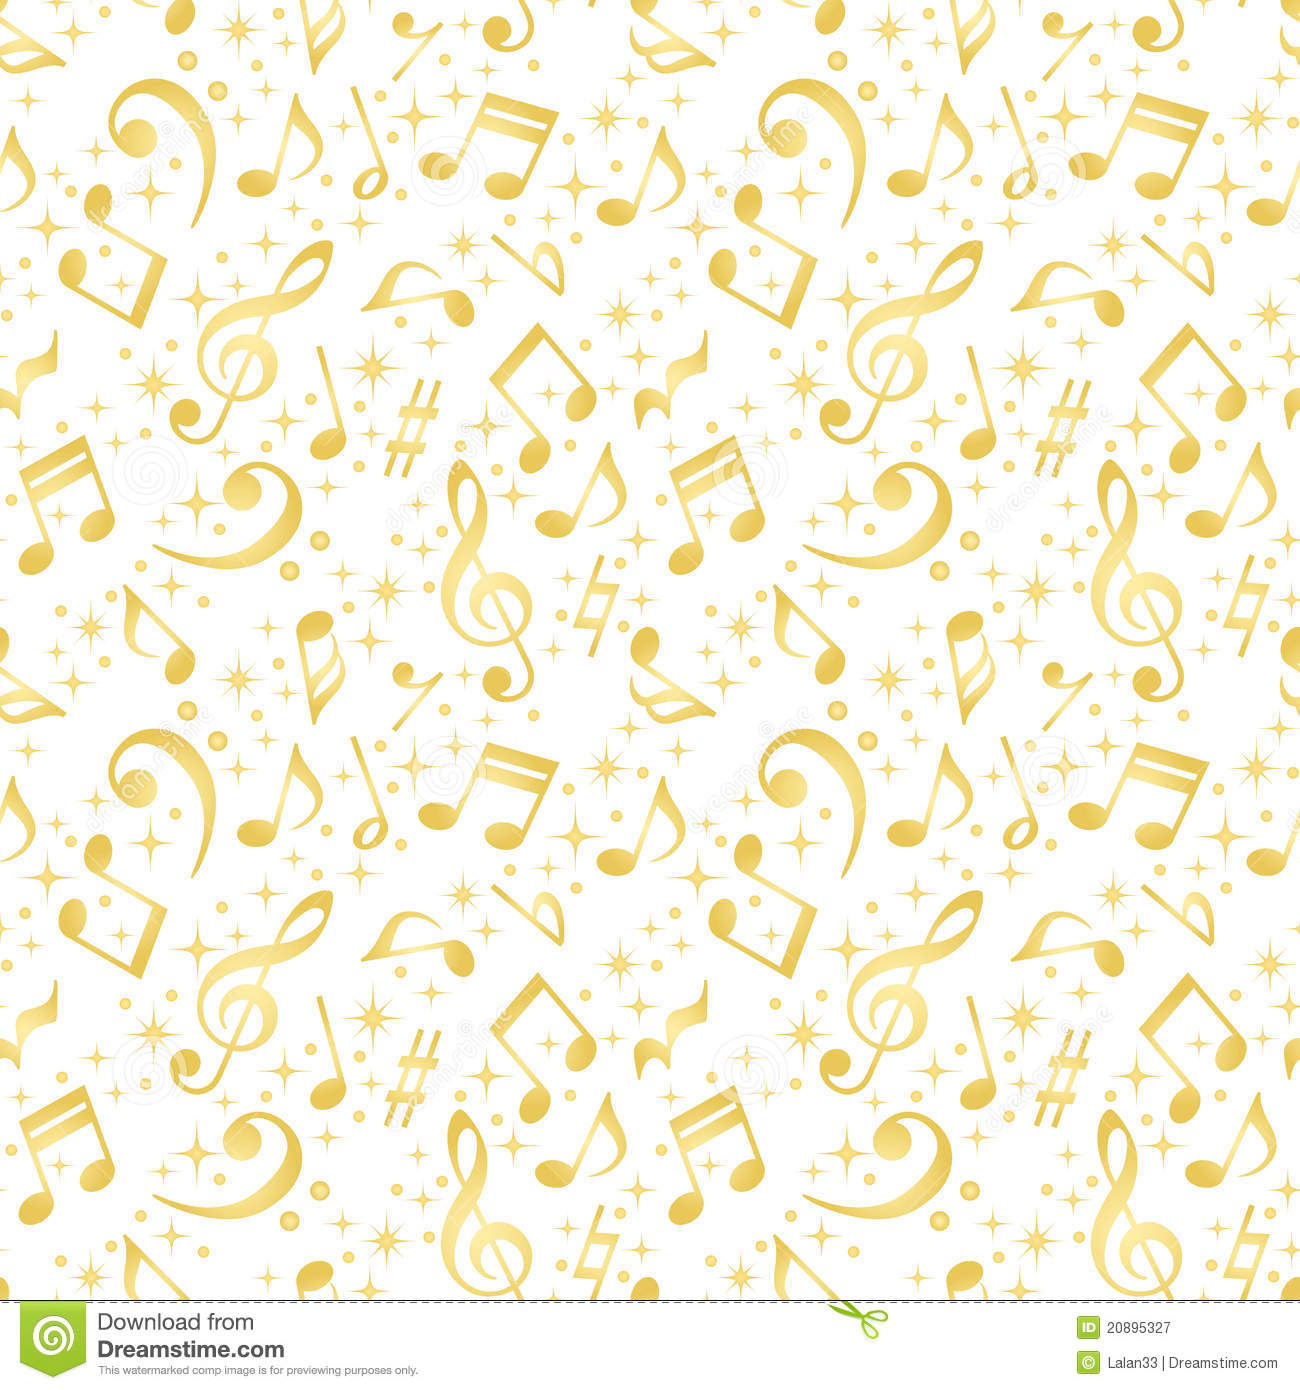 Music notes background stock vector illustration of chorus 20895327 music notes background voltagebd Image collections